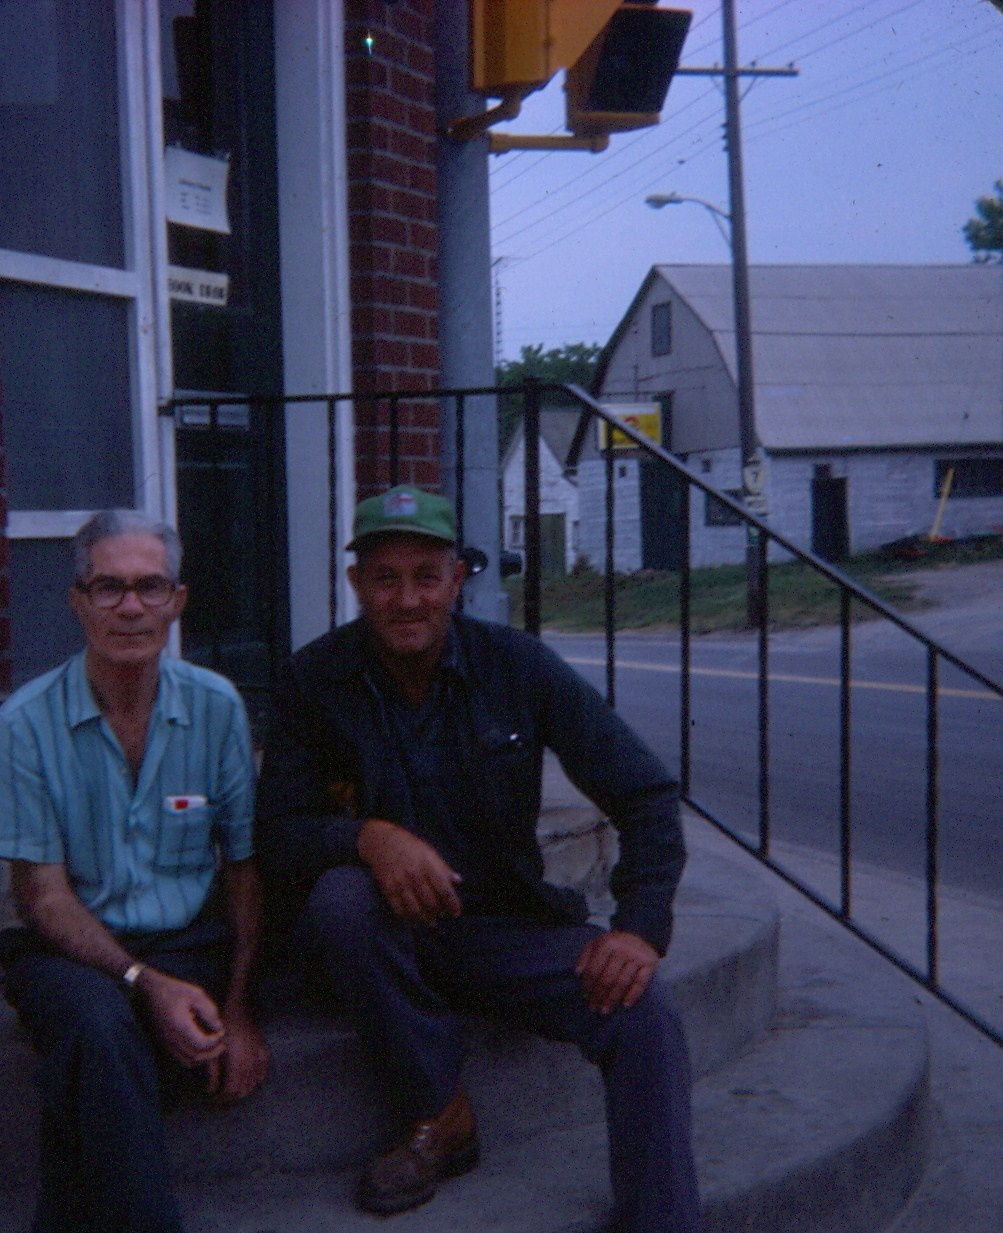 Hanging round the Library steps, 1977 bernard Forbes on the right. The fellow in the blue shirt is Kenny Hartin, brother Dave Hartin who lived on the Beaver Creek Settlement Road.